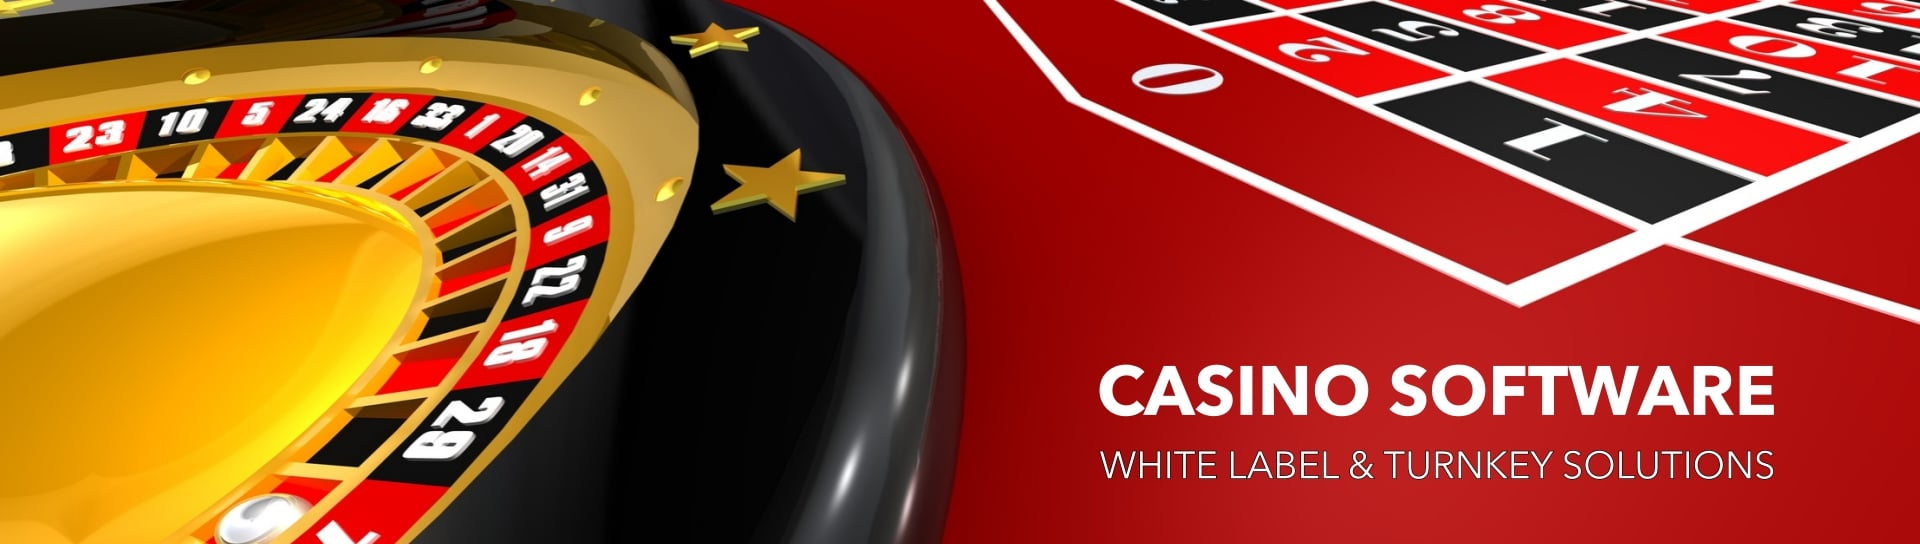 casino software header background